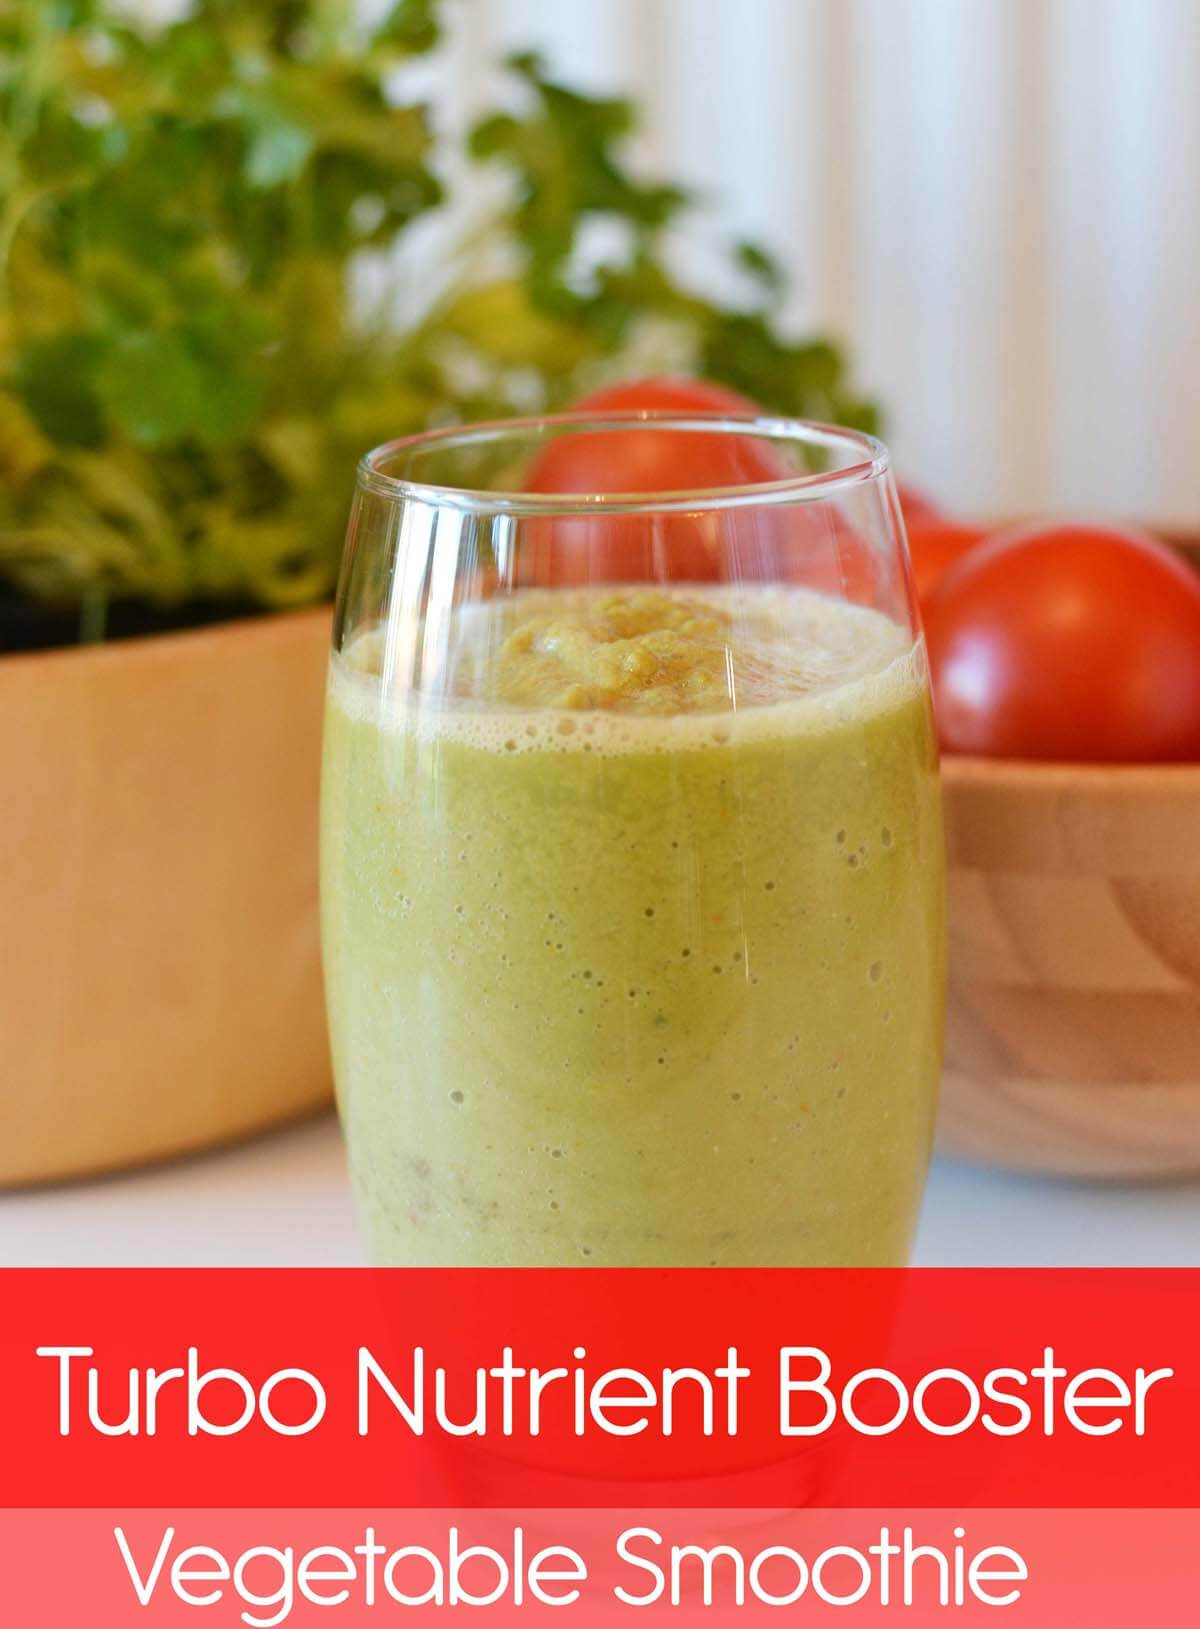 Turbo Nutrient Booster Vegetable Smoothie